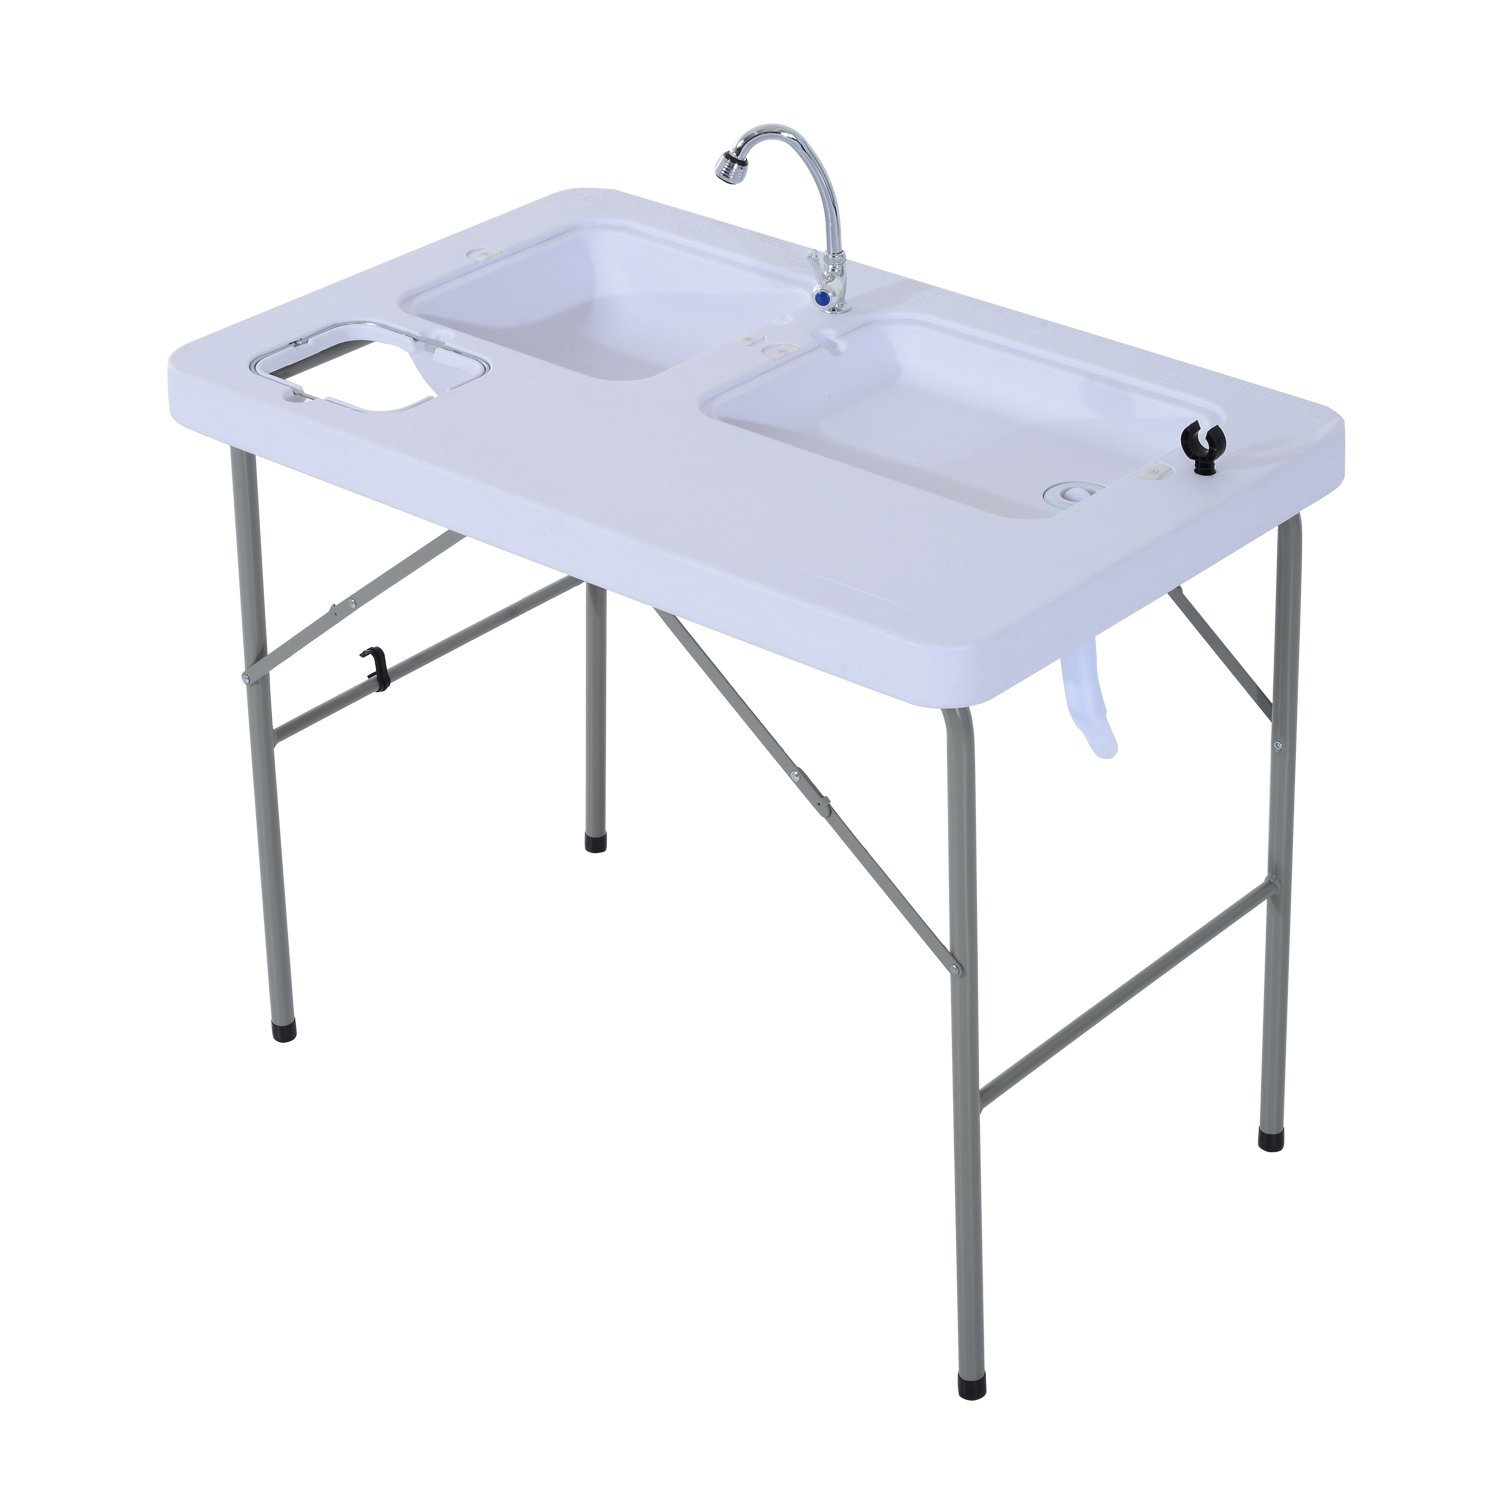 Outsunny Portable Folding Camping Table w  Faucet by Aosom LLC